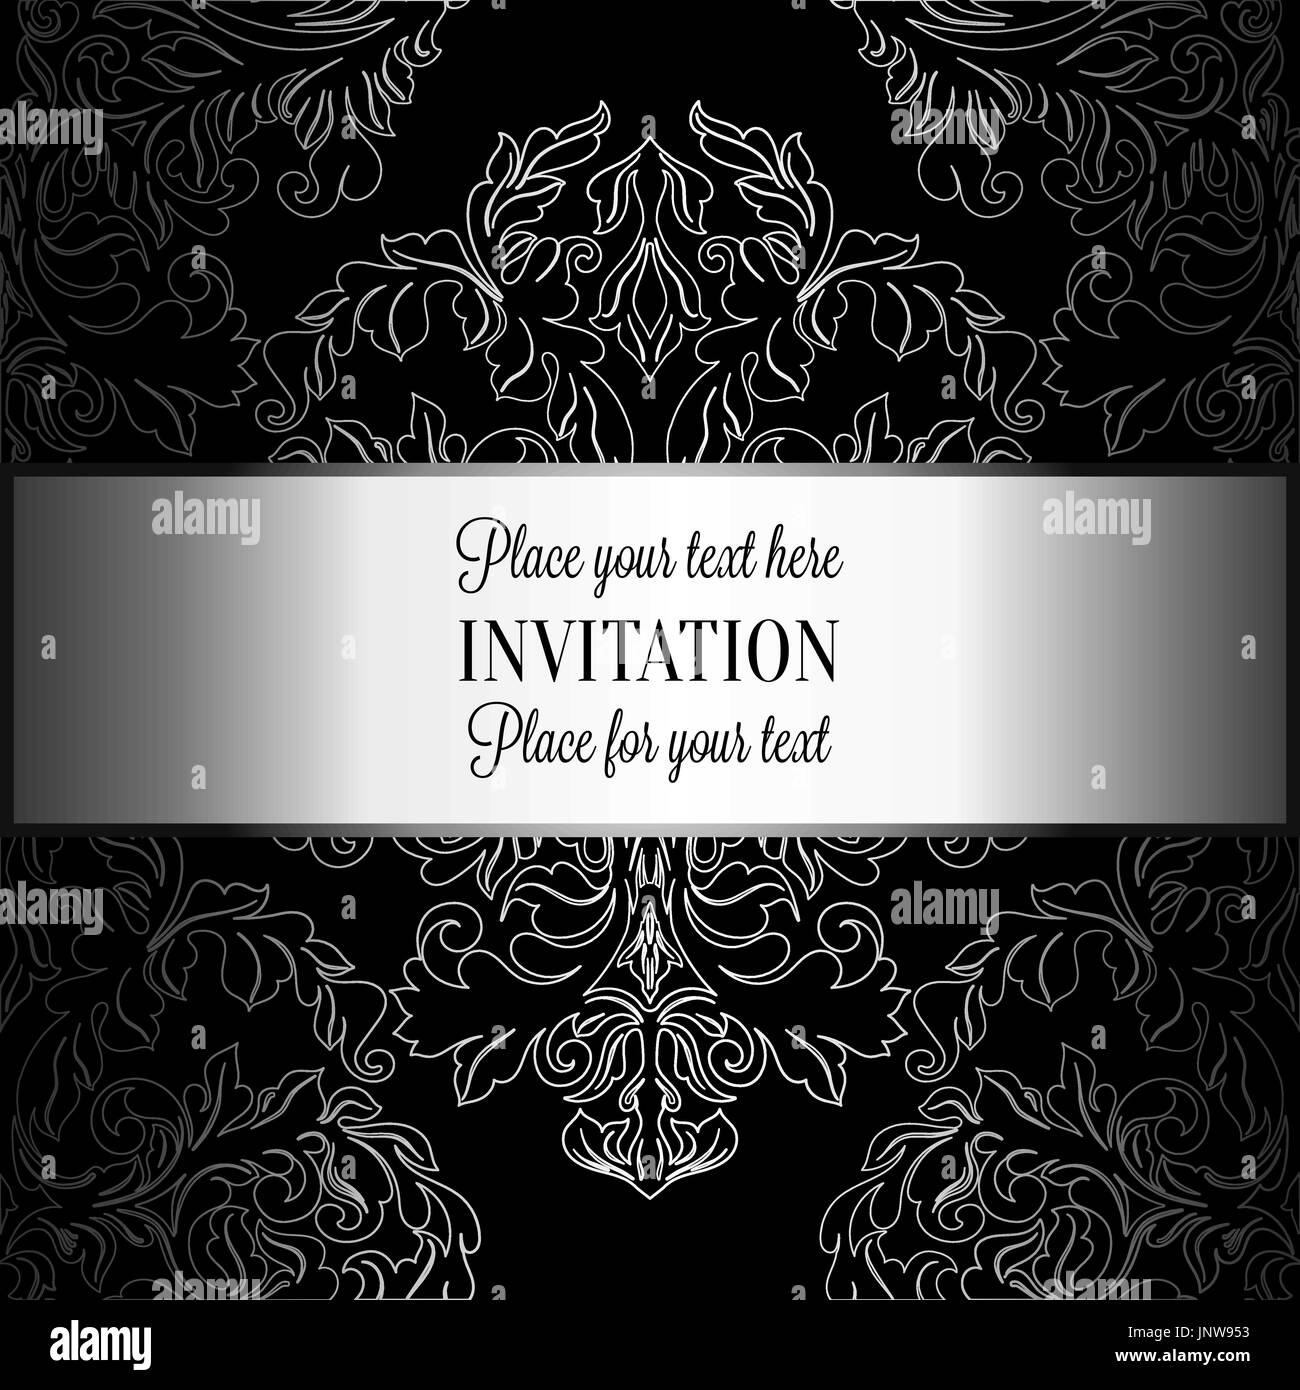 Baroque Background With Antique Luxury Black And White Vintage Frame Victorian Banner Damask Floral Wallpaper Ornaments Invitation Card S